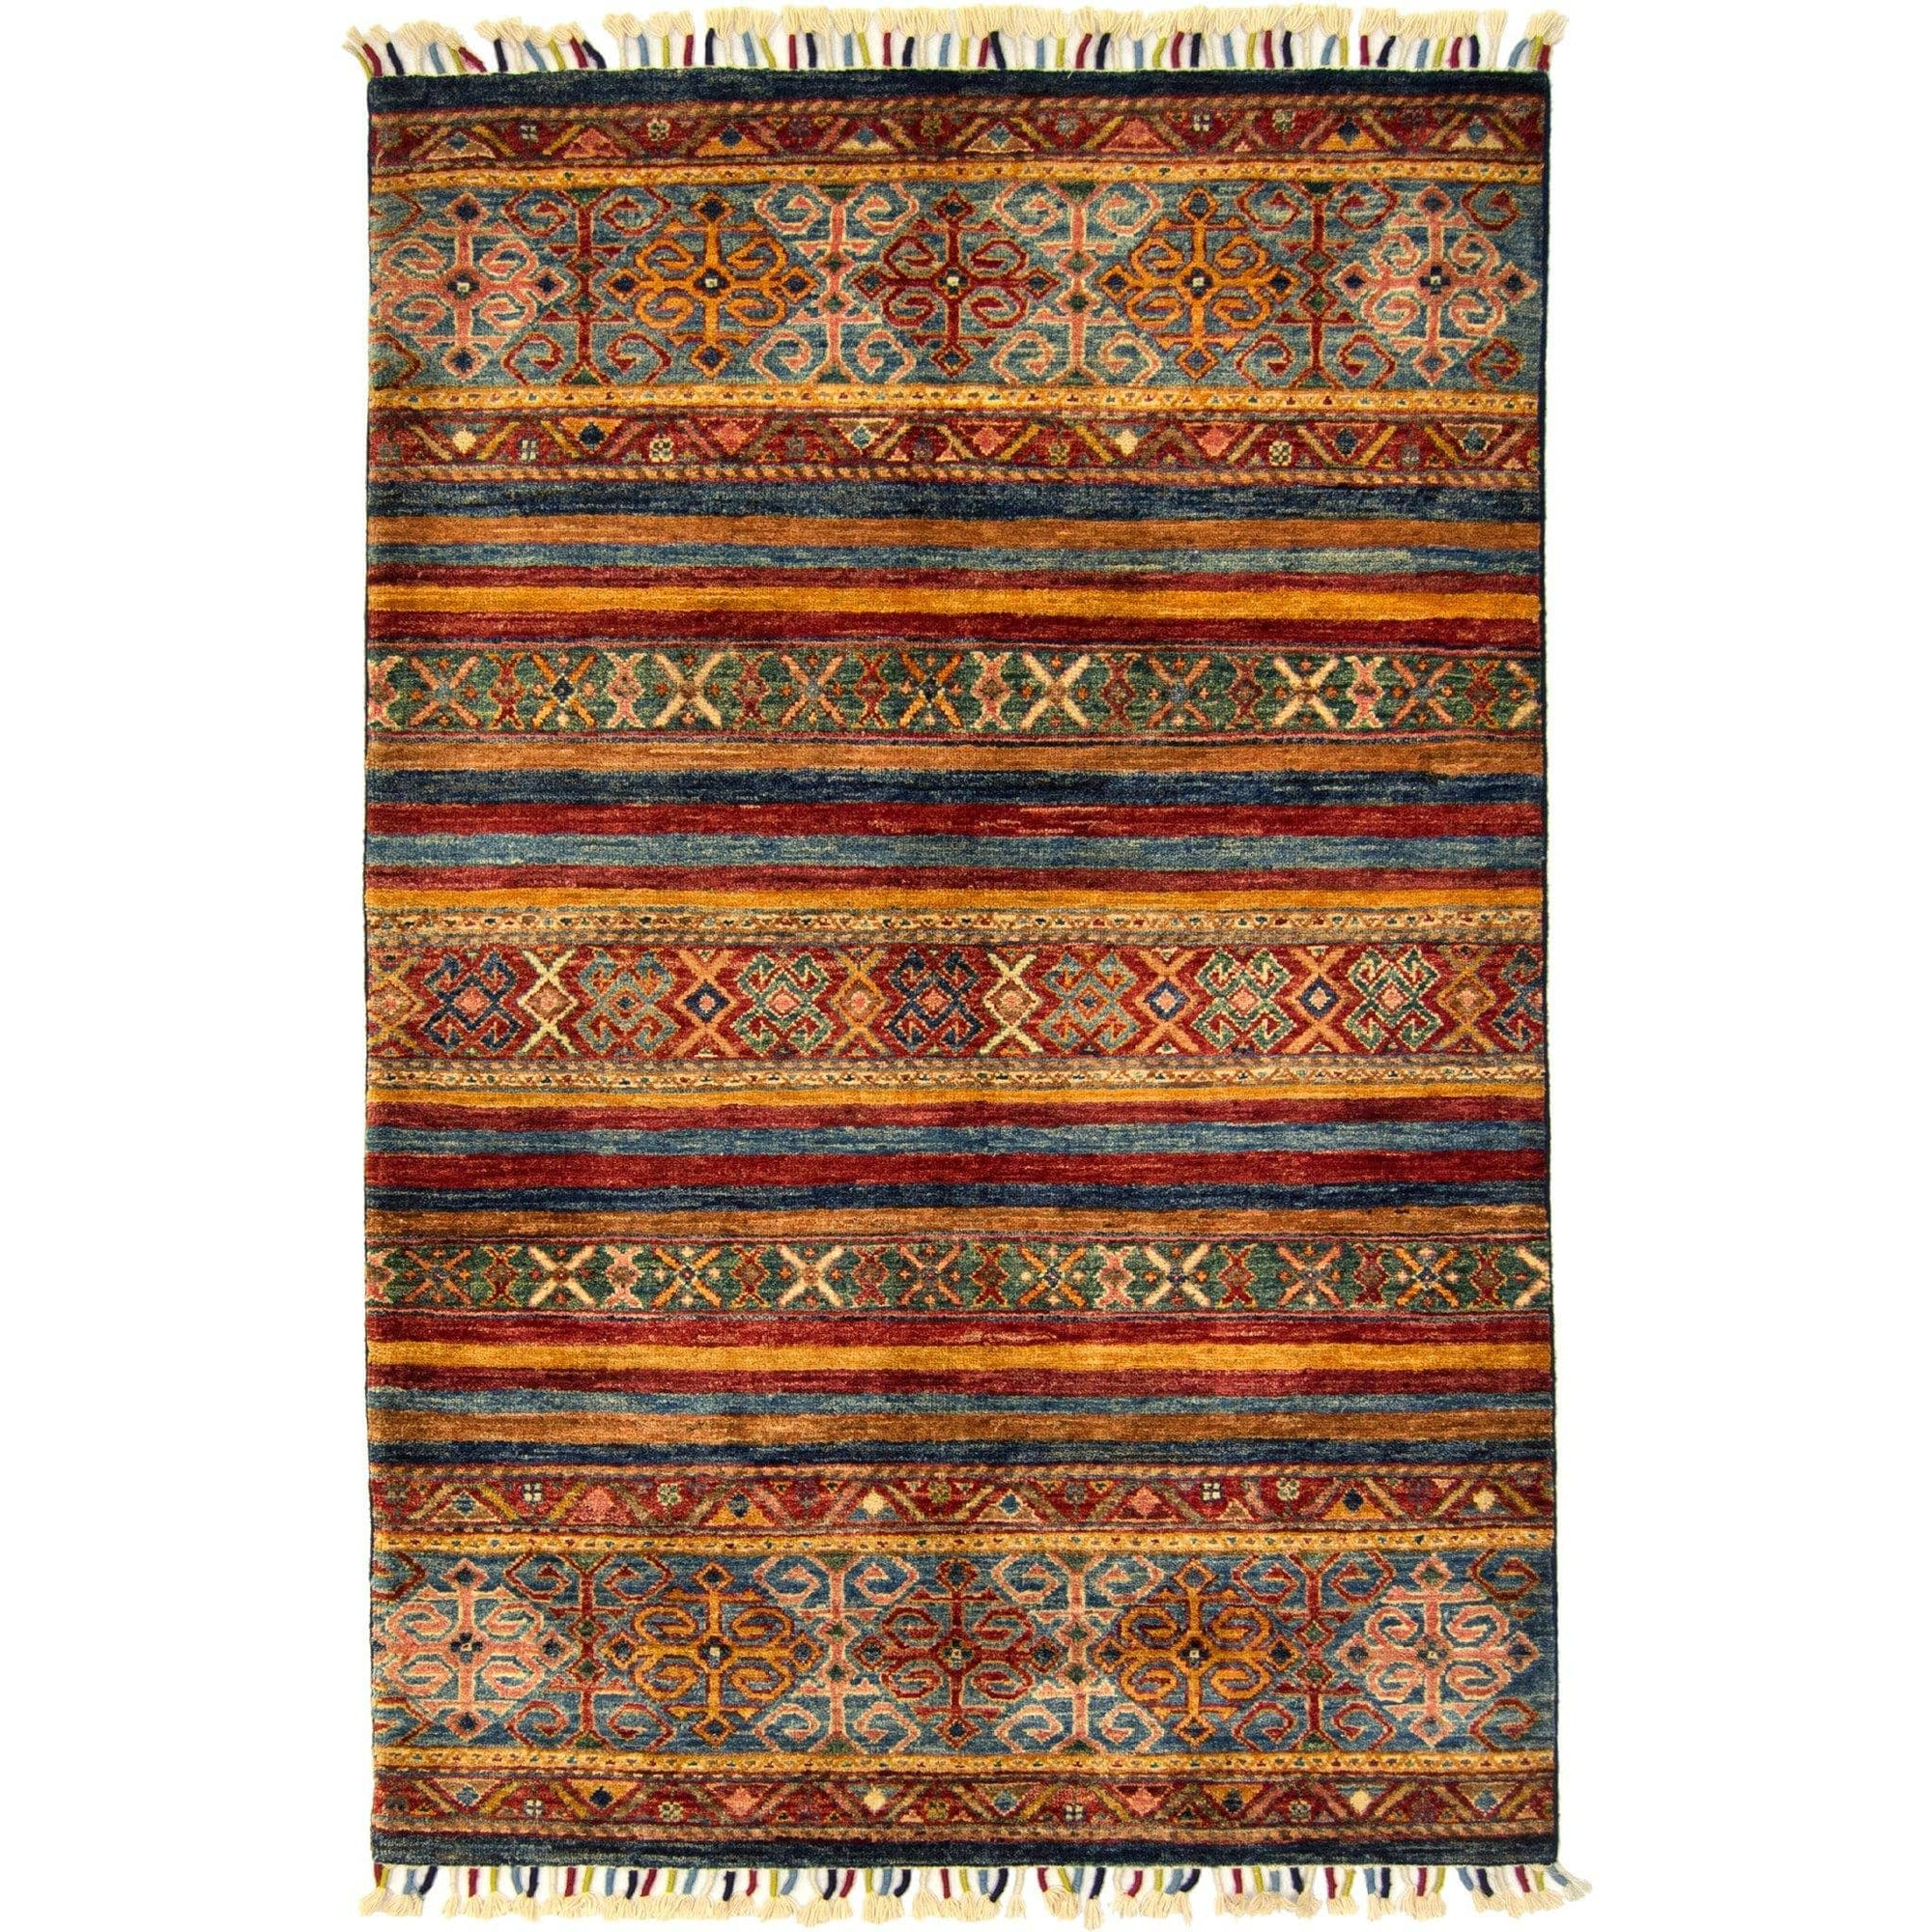 Hand-knotted Wool Tribal Khorjin Rug 103cm x 158cm Persian-Rug | House-of-Haghi | NewMarket | Auckland | NZ | Handmade Persian Rugs | Hand Knotted Persian Rugs